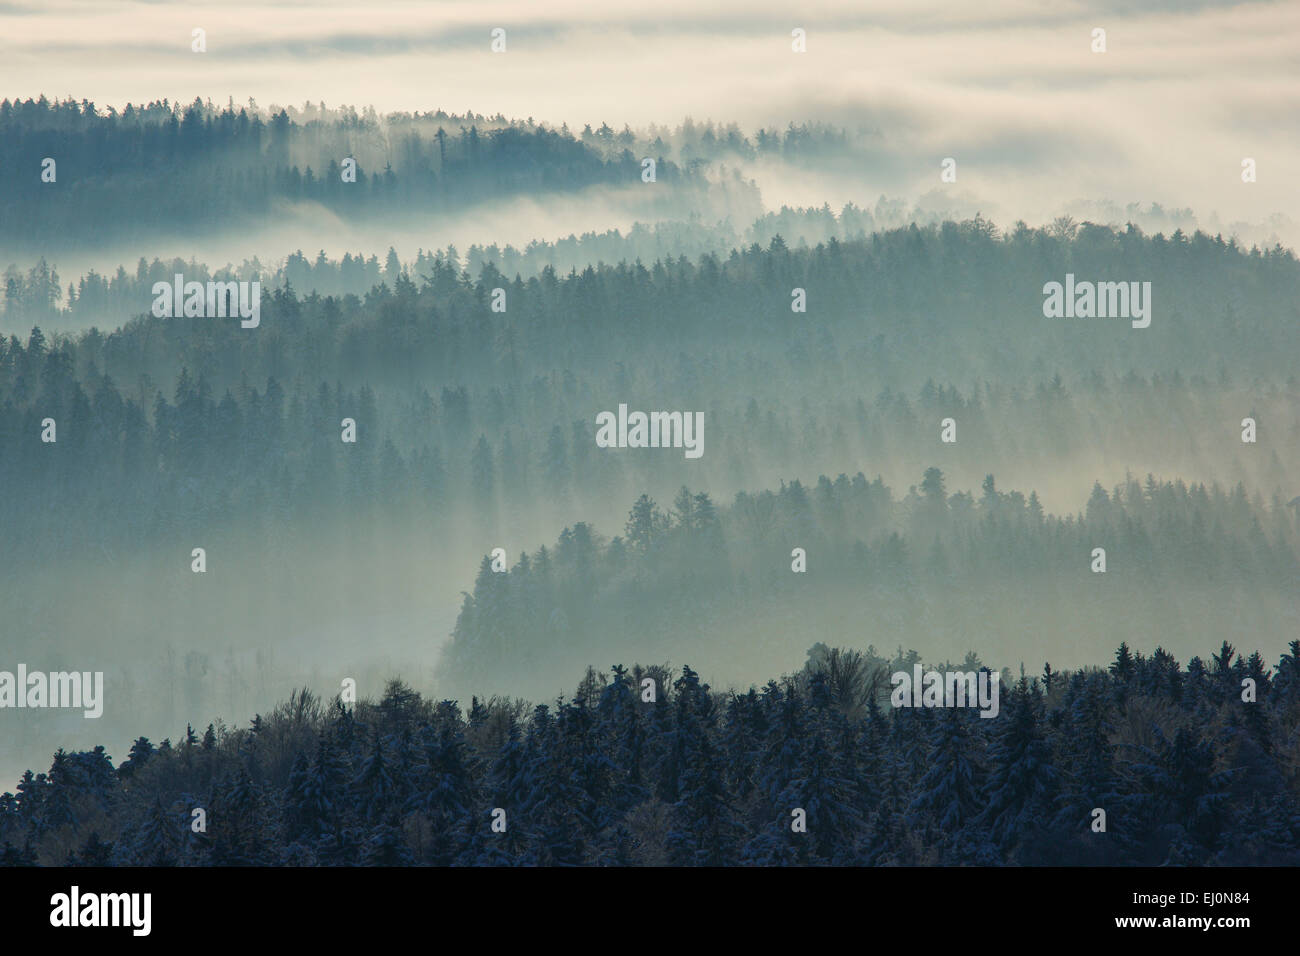 Tree, trees, pines, cold, midland, conifer, coniferous forest, nature, fog, fog patches, silhouette, snow, swath, - Stock Image